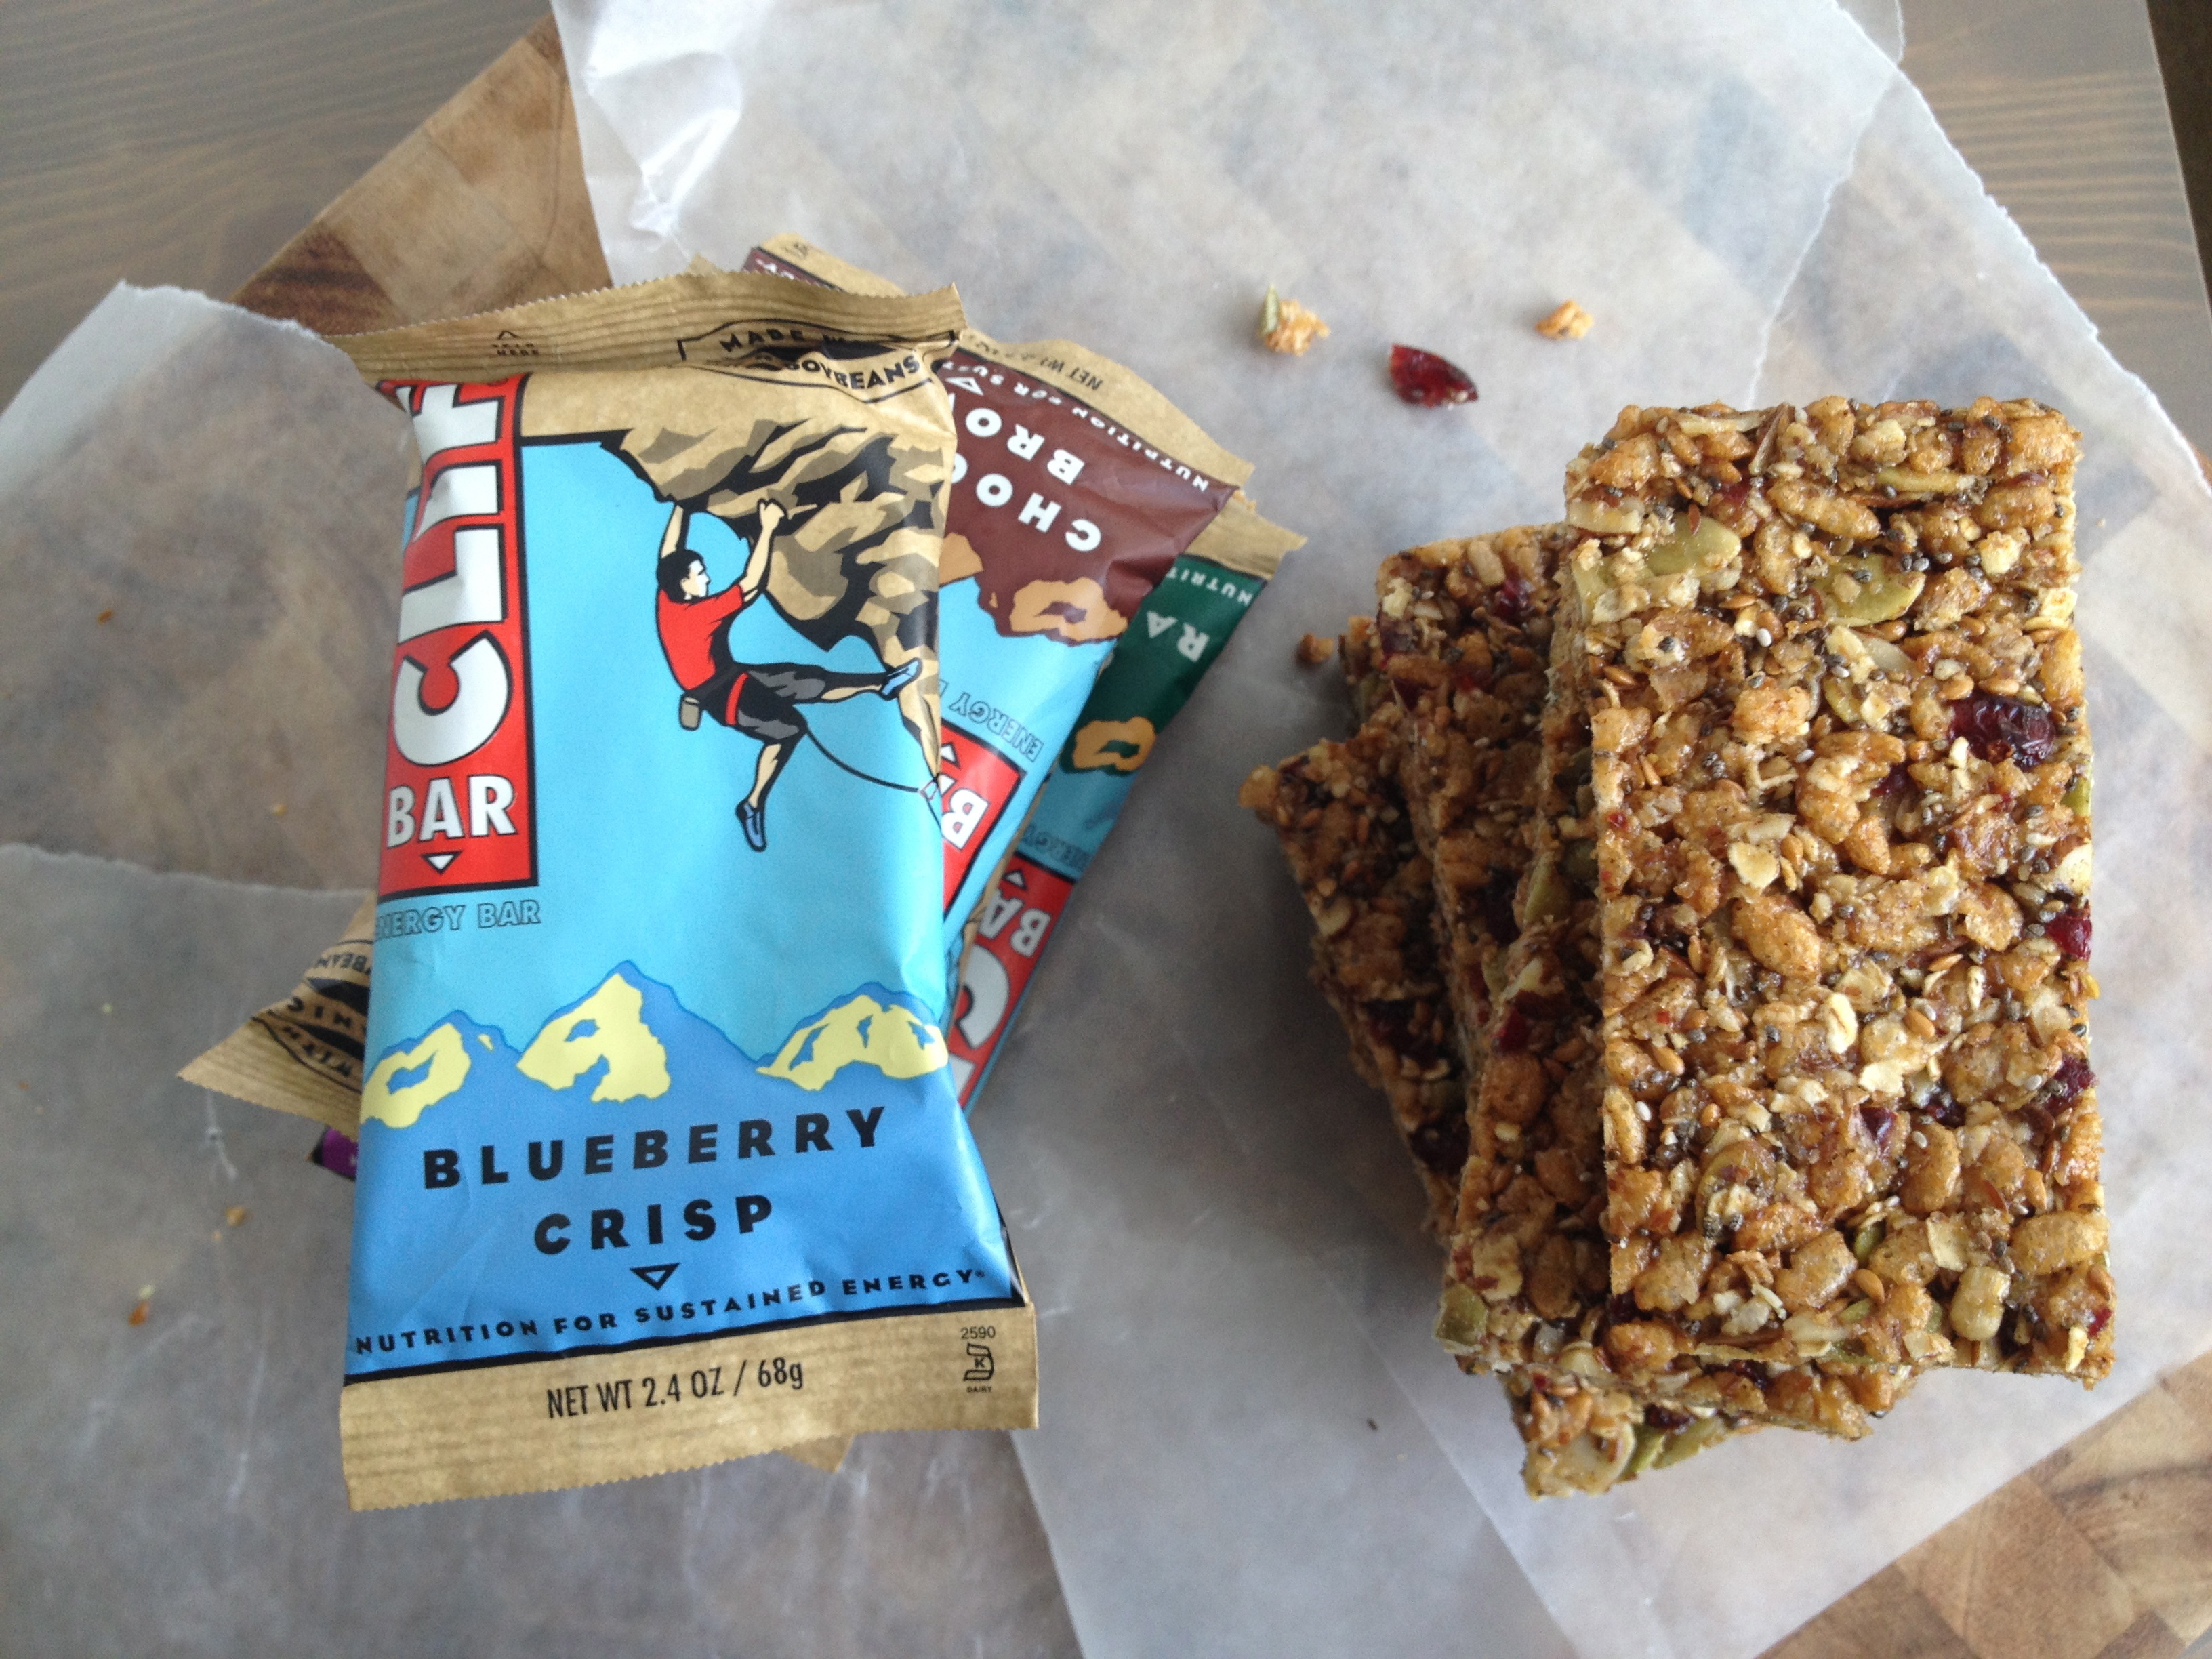 Clif bars are a must-have in anyone's pantry because they keep you full for a long time and taste great too. You will keep these around a while because they last a long time and provide you with a nutritious, tasty snack that will keep you full for a while.